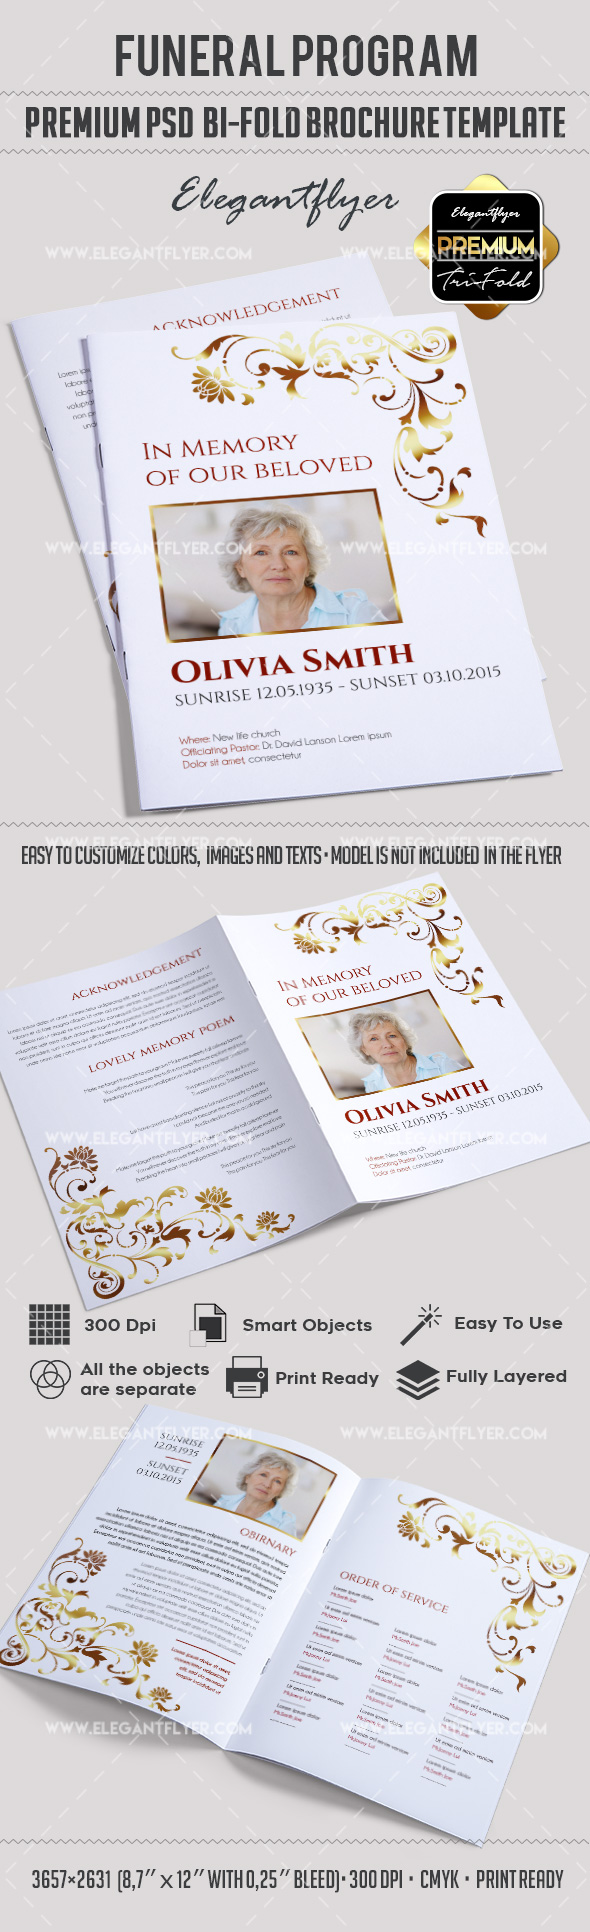 Brochure for funeral program template by elegantflyer for Program brochure templates